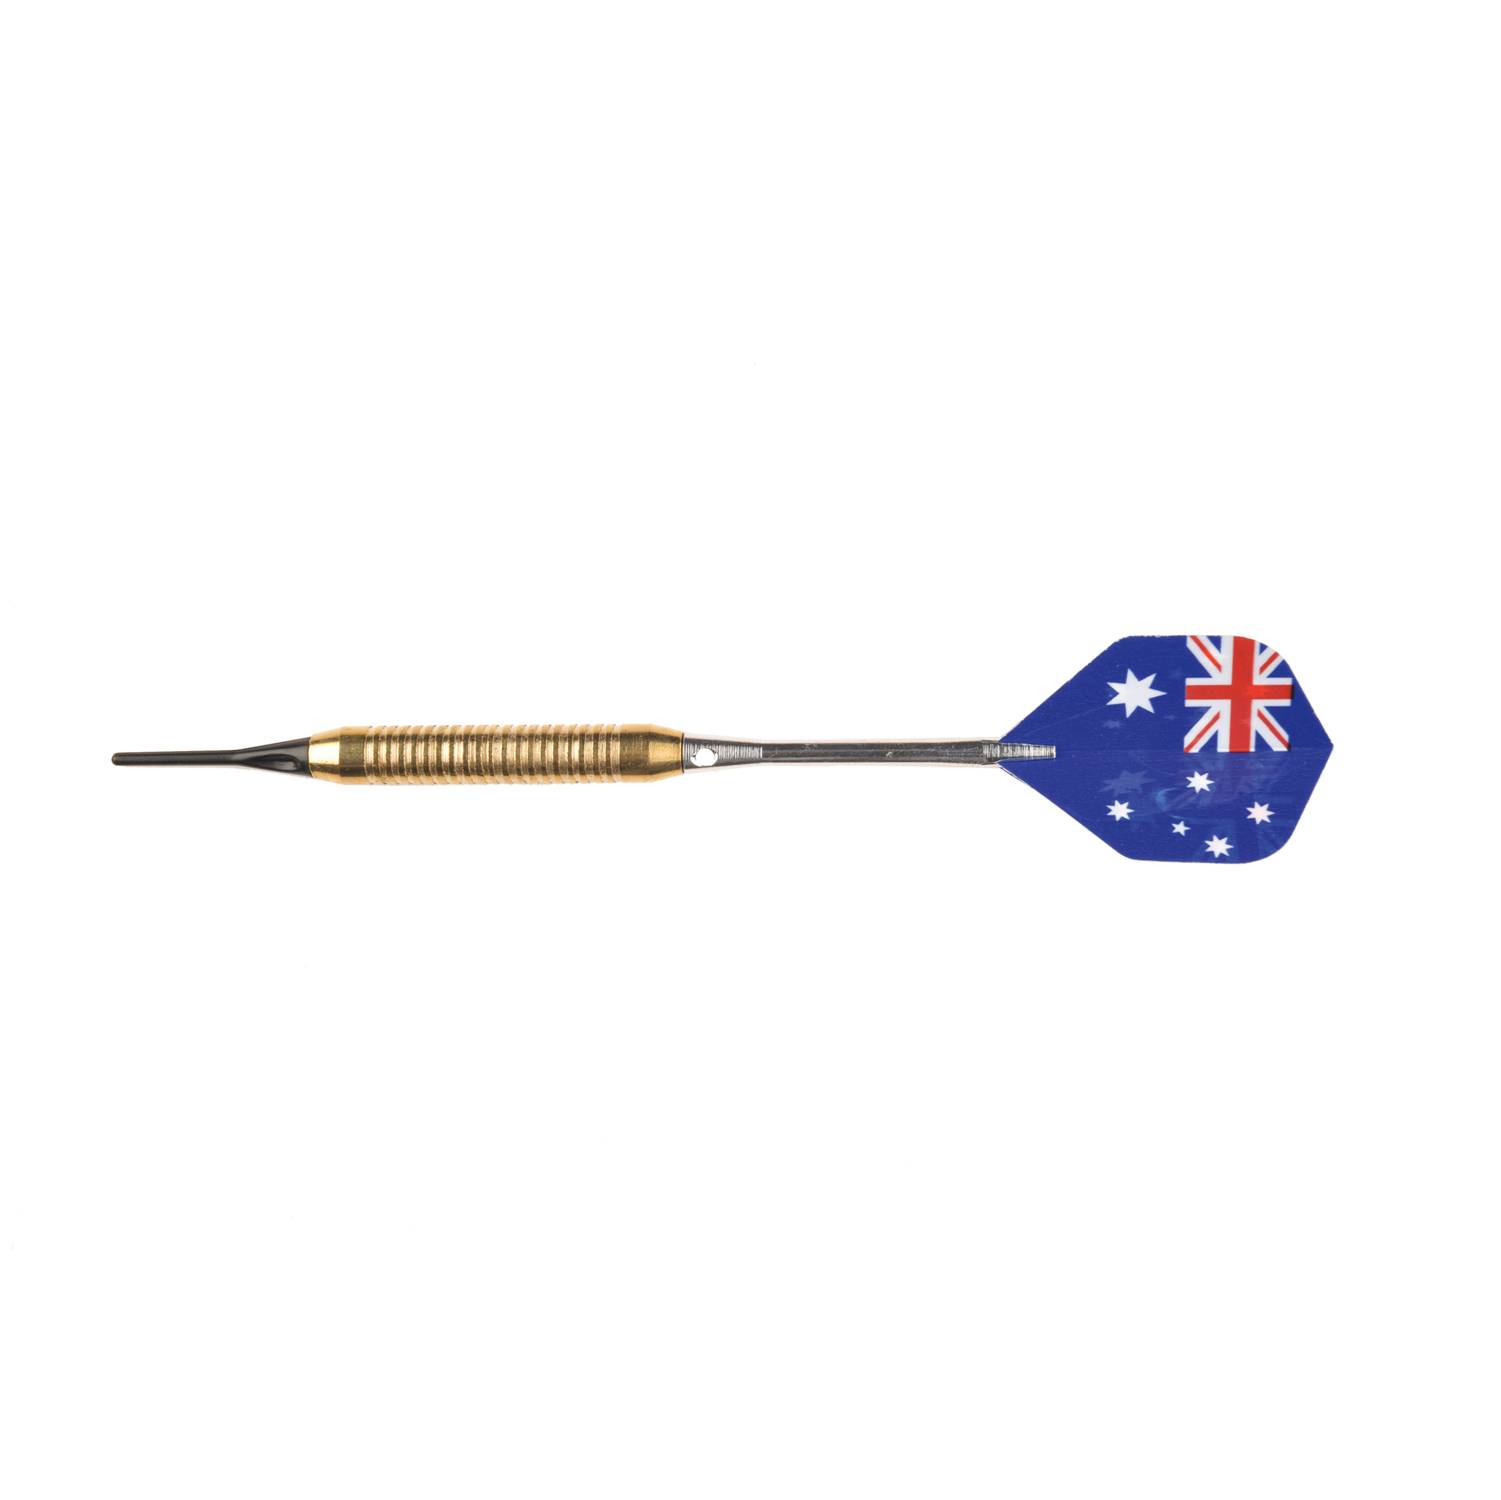 Softdarts in Turnierqualität